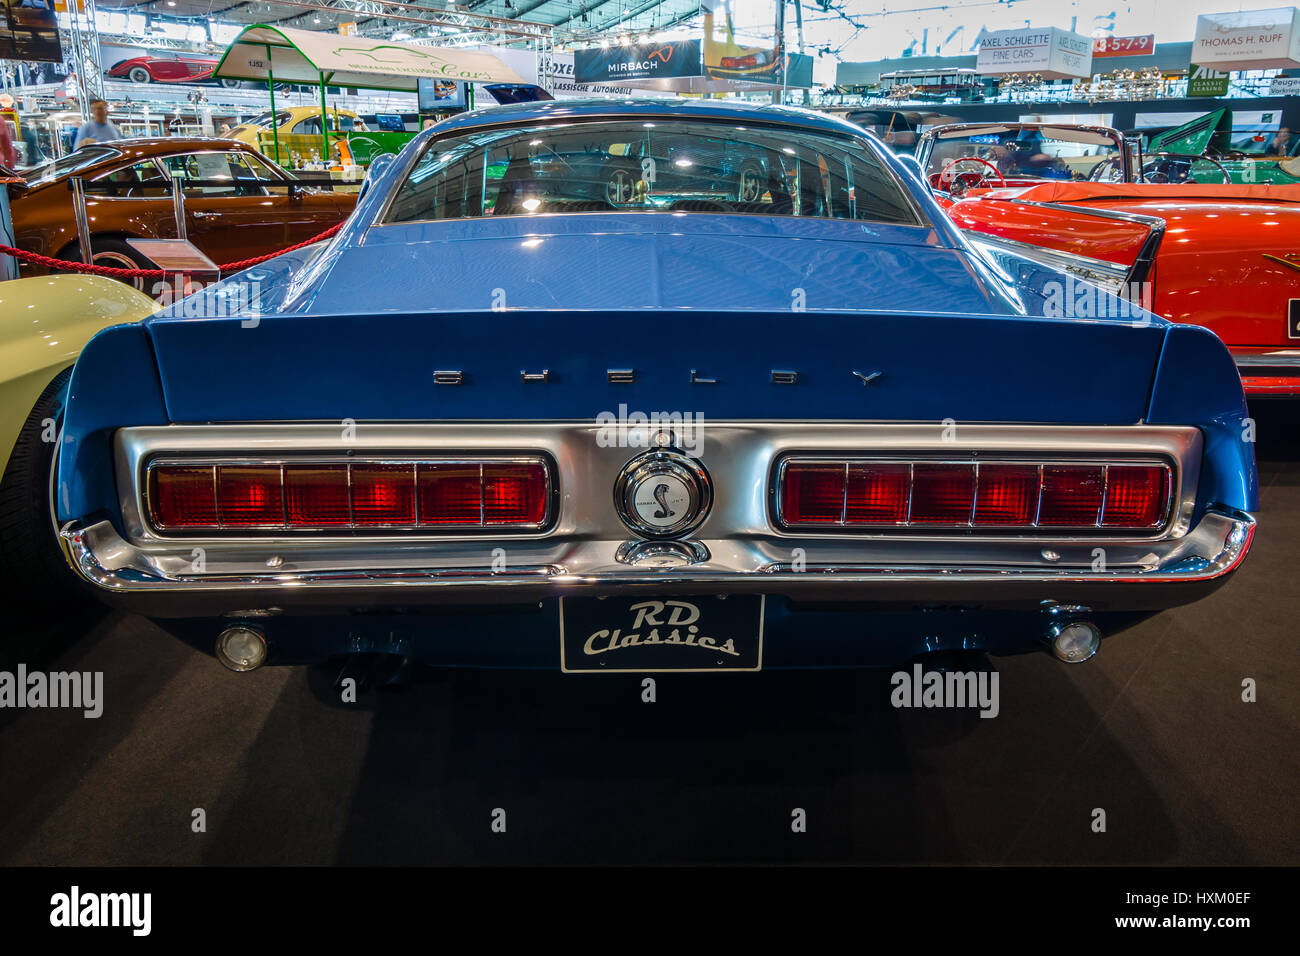 Muscle car ford mustang shelby gt500kr 1968 rear view europes greatest classic car exhibition retro classics